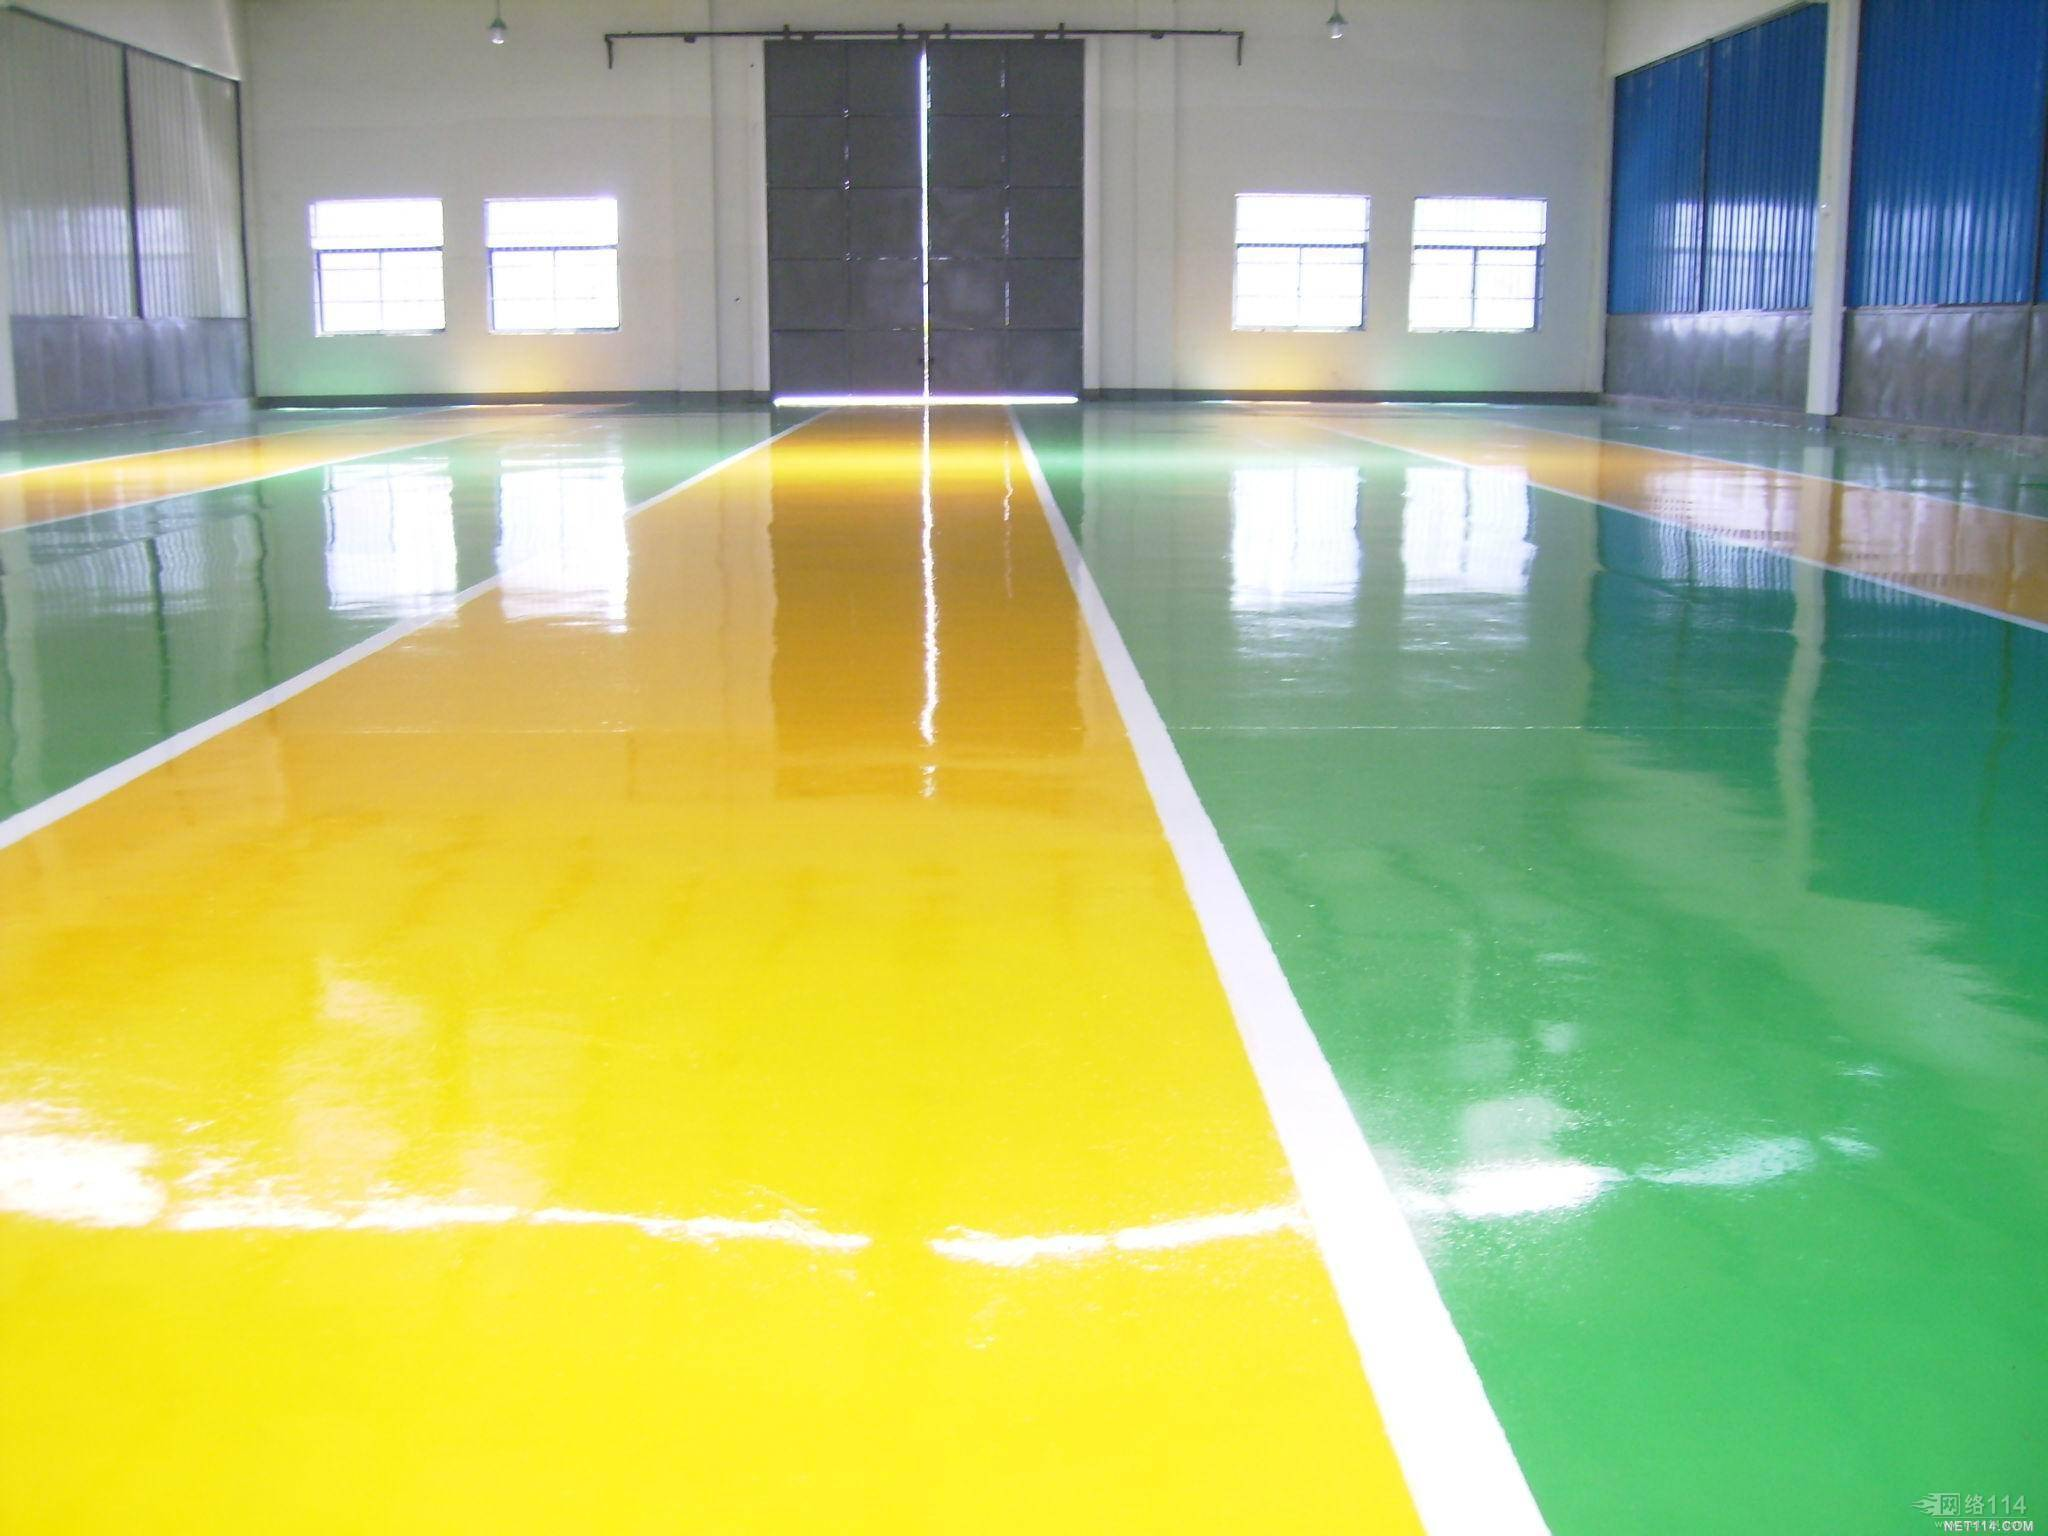 Anti Static Epoxy Floor Coat | Anti Static Floor Coating | Anti Static Coating Paint  | Non Static Coating|  Electrostatic Discharge (ESD) Flooring -Manufacturer Supplier | Protexion